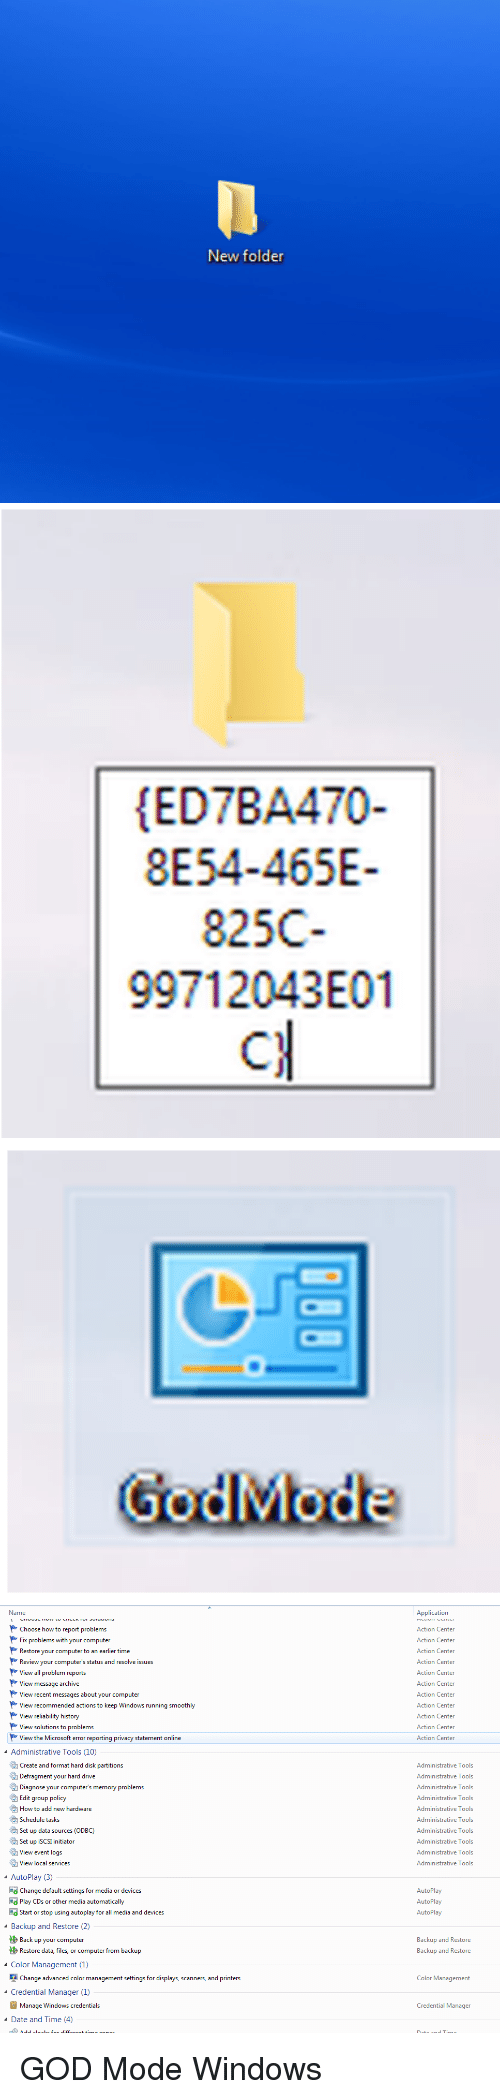 Initialisms: New folder   HED7BA470-  8E54-465E-  825C  997 12043E01   Mode   Name  Choose how to report problems  Fix problems with your computer  Restore  our computer to an ea  er time  Review your computer's status and resolve issues  View all problem reports  View message archive  View  ecent messages about your computer  View recommended actions to keep Windows running smooth  View reliability history  View solutions to problems  View the Microsoft error  eporting privacy statement online  4 Administrative Tools (10)  Create and format hard disk partitions  Defragment your hard drive  Diagnose yr  s memory problems  our computer  Edit group policy  How to add new hardware  Schedule tasks  Set up data sources (ODBC)  et up iscSI initiator  View event logs  View local services  AutoPlay (3)  Change default settings for media or devices  Ed Play CDs or other media automatica  d Start or stop using autoplay for a  media and devices  s Backup and Restore (2)  Back up your computer  Restore data, files, or computer from backup  Color Management (1)  n Change advanced color management settings for displays, scanners, and printers  4 Credential Manager (1)  Manage Windows credentials  Date and Time (4)  Application  Action Center  Action Center  Action Center  Action Center  Action Center  Action Center  Action Center  Action Center  Action Center  Action Center  Action Center  Administrative Tools  Administrative Tools  Administrative Tools  Administrative Tools  Administrative Tools  Administrative Tools  Administrative Tools  Administrative Tools  Administrative Tools  Administrative Tools  AutoPlay  AutoPlay  AutoPlay  Backup and Restore  Backup and Restore  Color Management  Credential Manager GOD Mode Windows